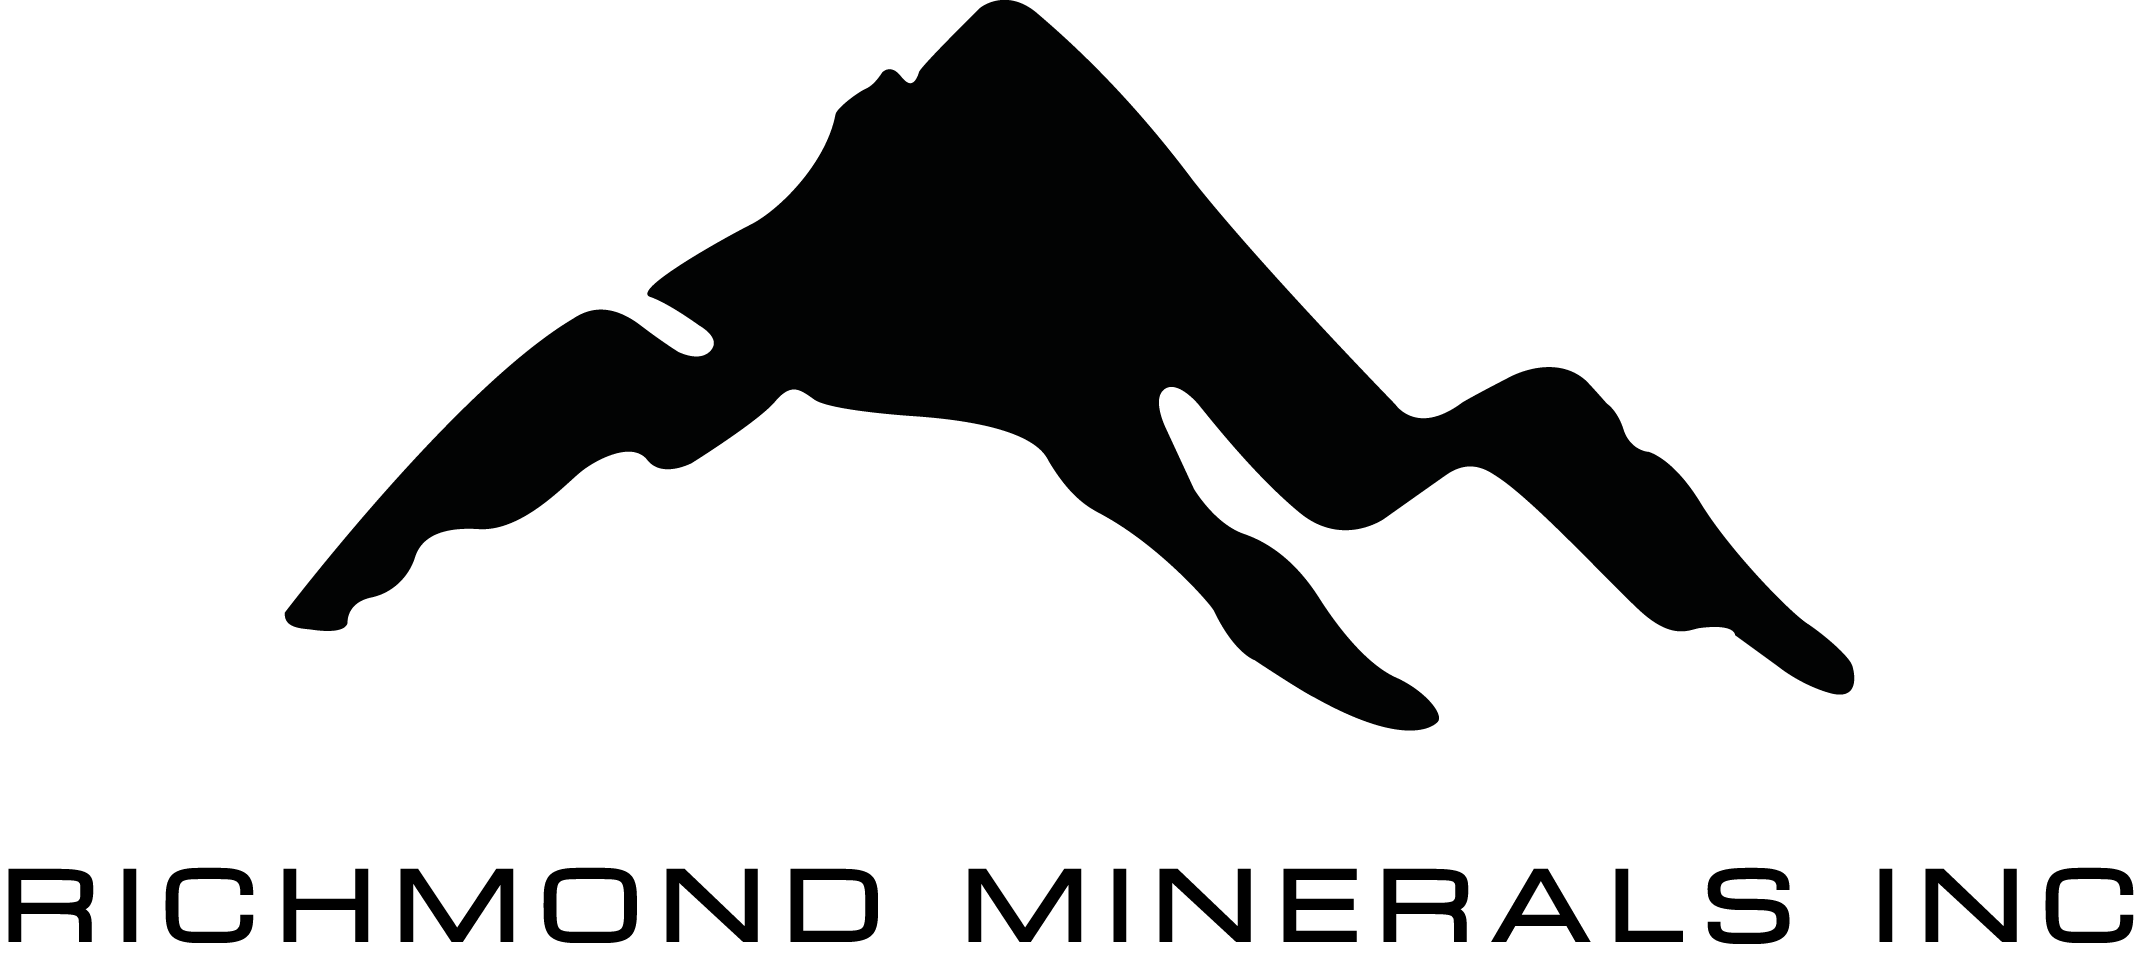 Richmondminerals